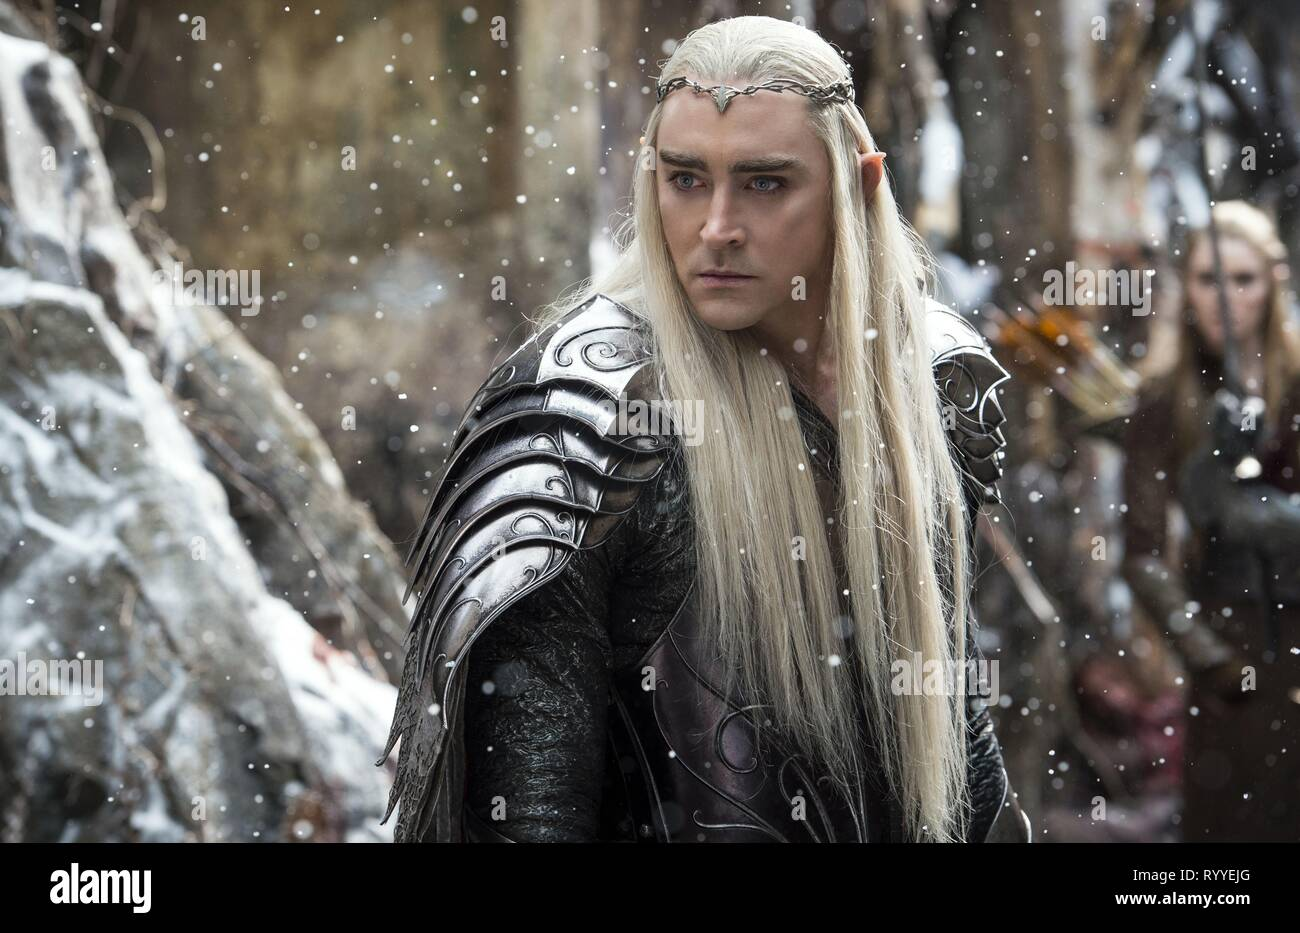 LEE PACE, THE HOBBIT: THE BATTLE OF THE FIVE ARMIES, 2014 - Stock Image